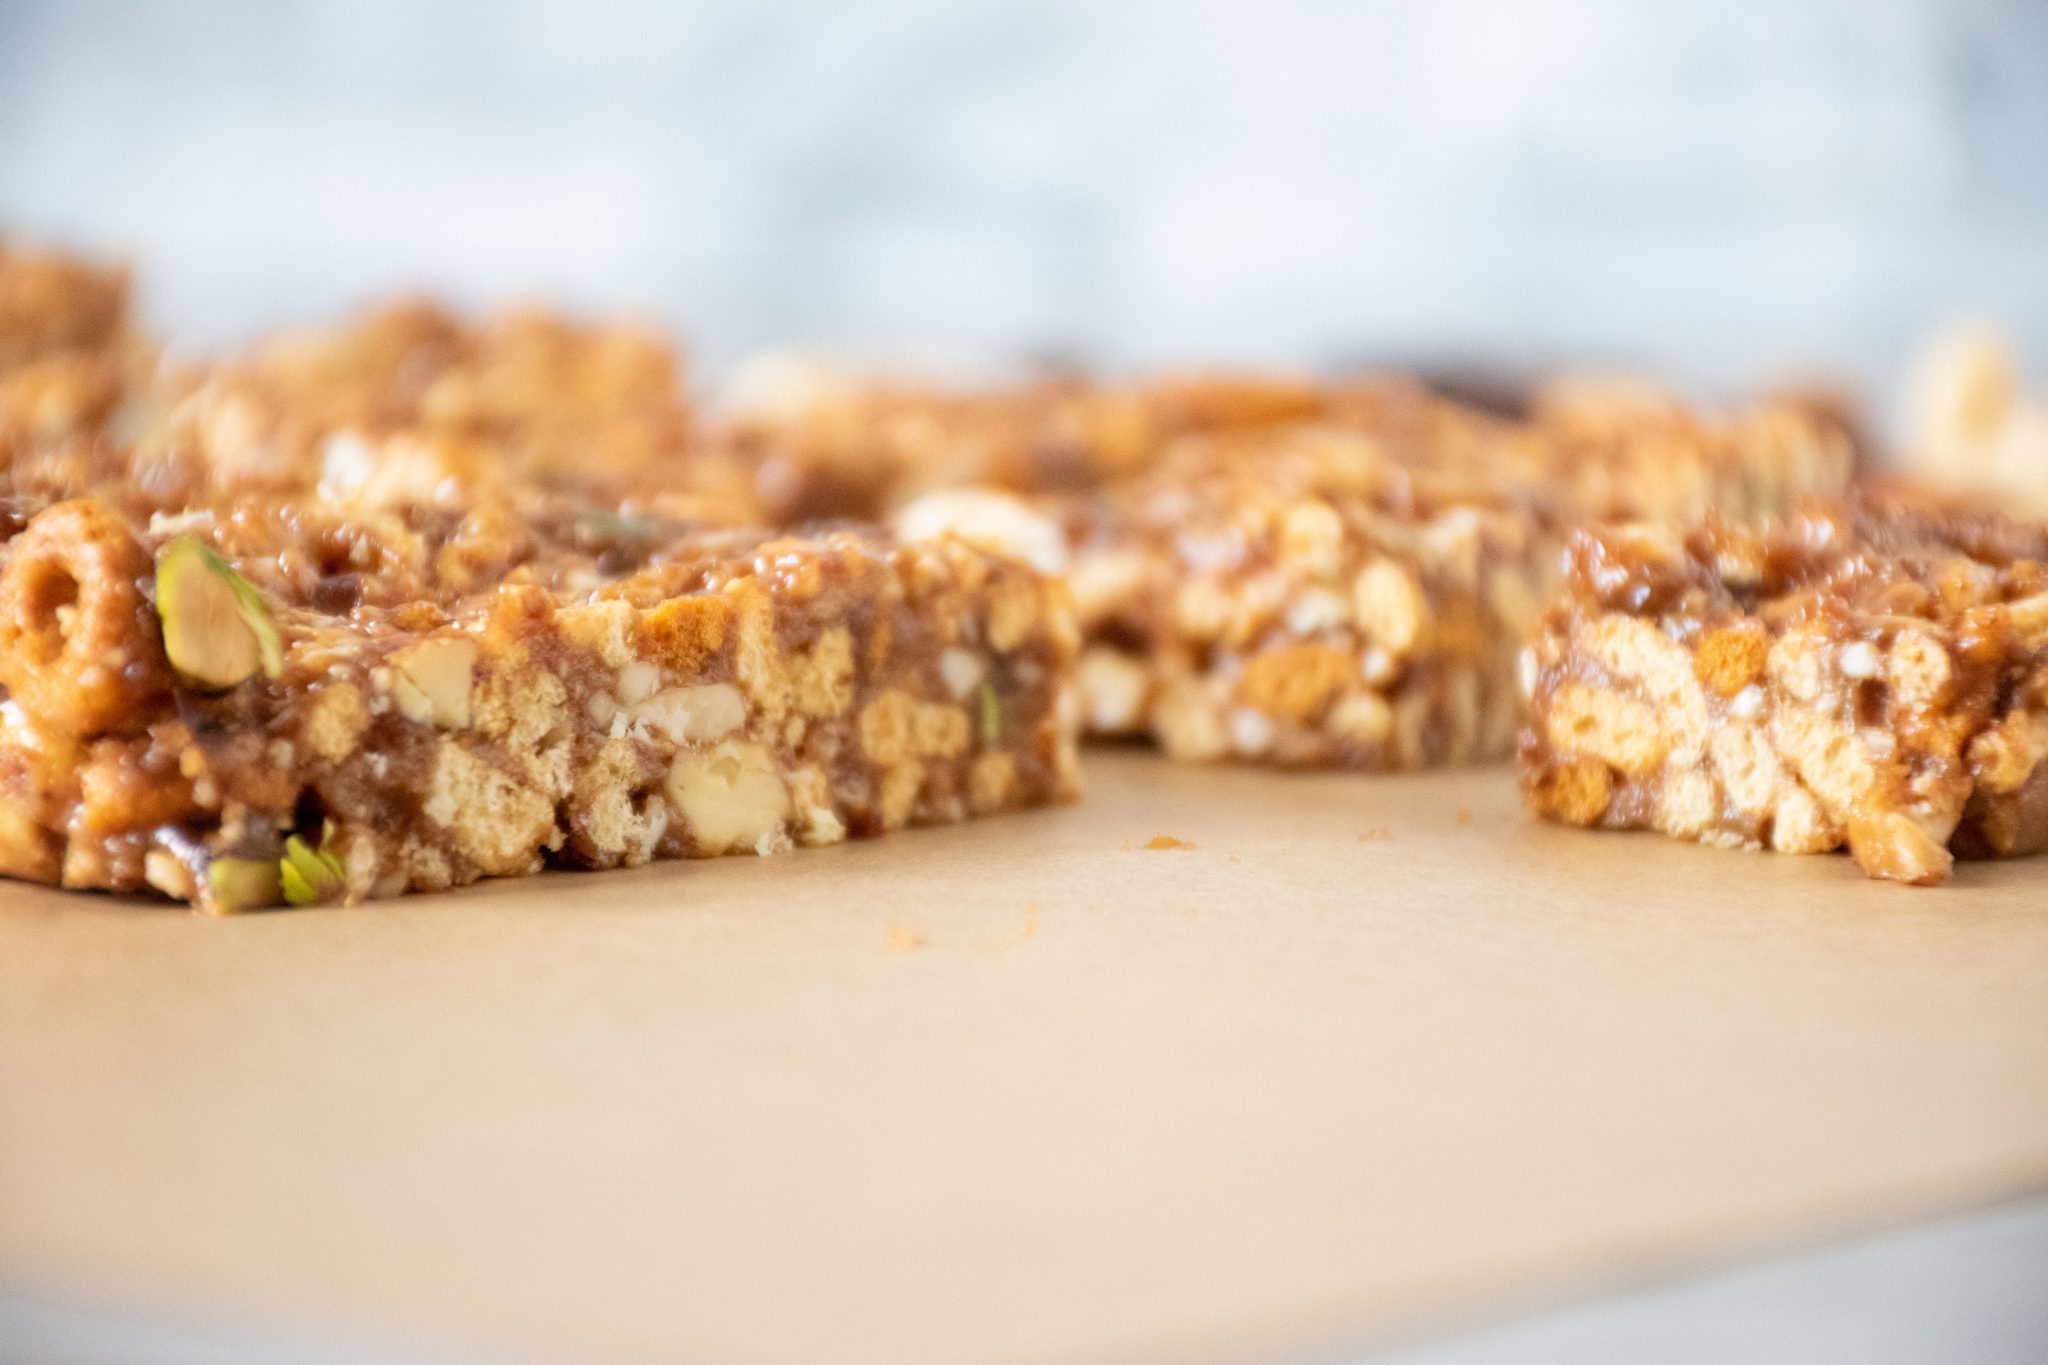 Close up of the side of cereal bars, on parchment paper.